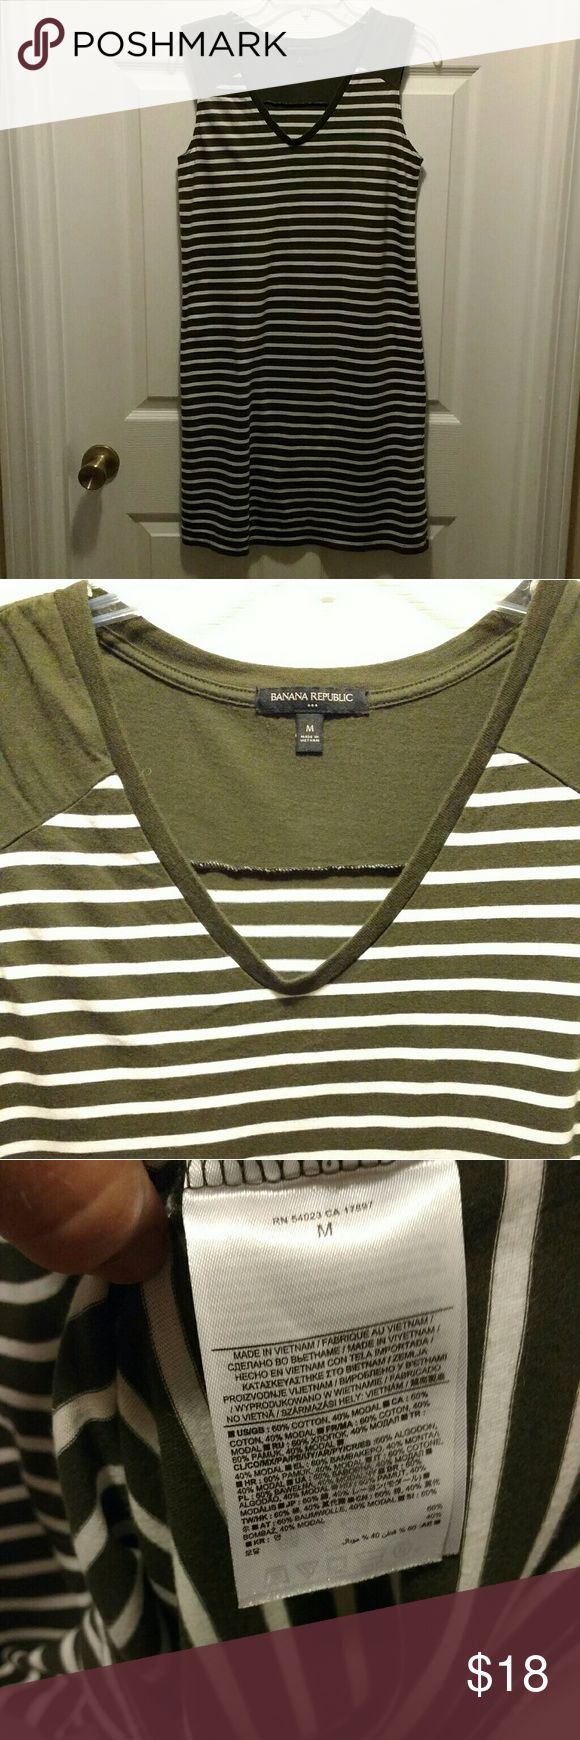 Banana Republic olive green striped dress Olive green and white Banana Republic striped t-shirt dress.  Soft and comfy!  Would look great with leggings and boots! Banana Republic Dresses Midi